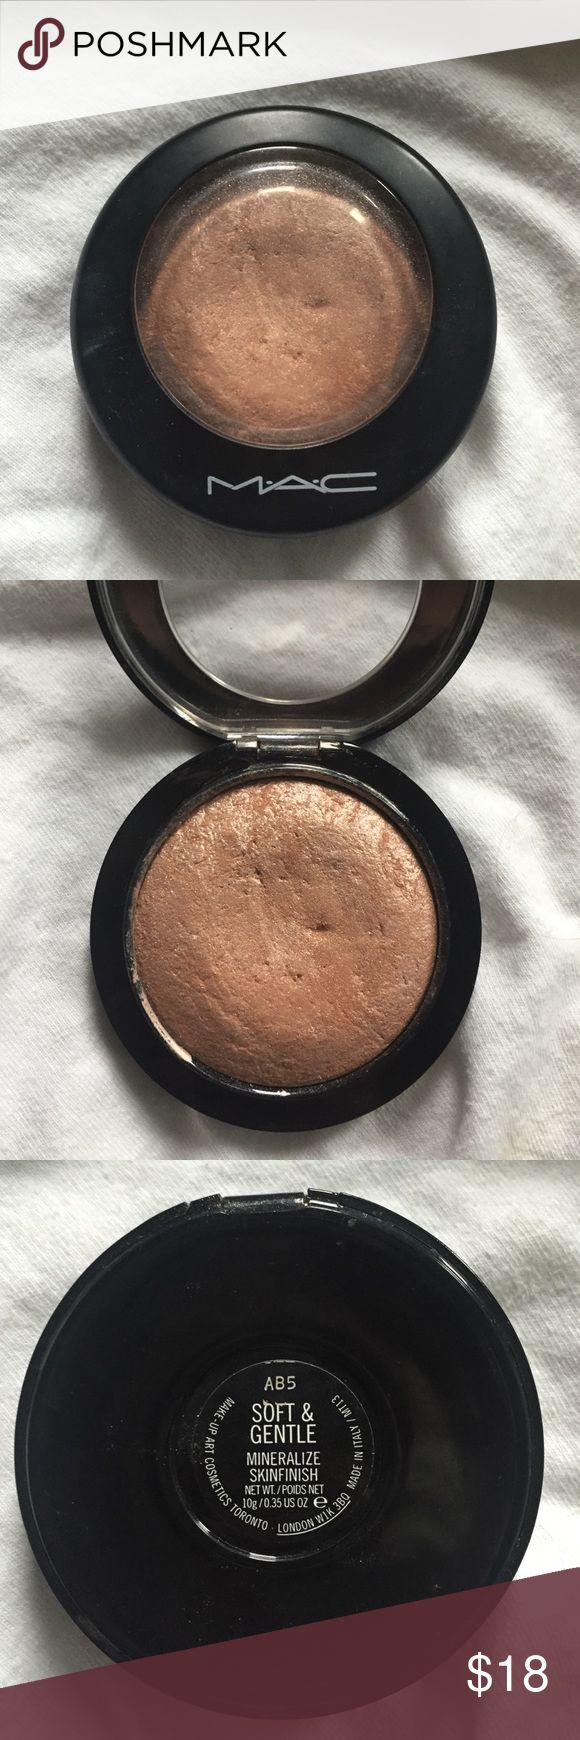 MAC Highlighter Mac soft and gentle highlighter. Bought off another posher and was too light for me. Good condition MAC Cosmetics Makeup